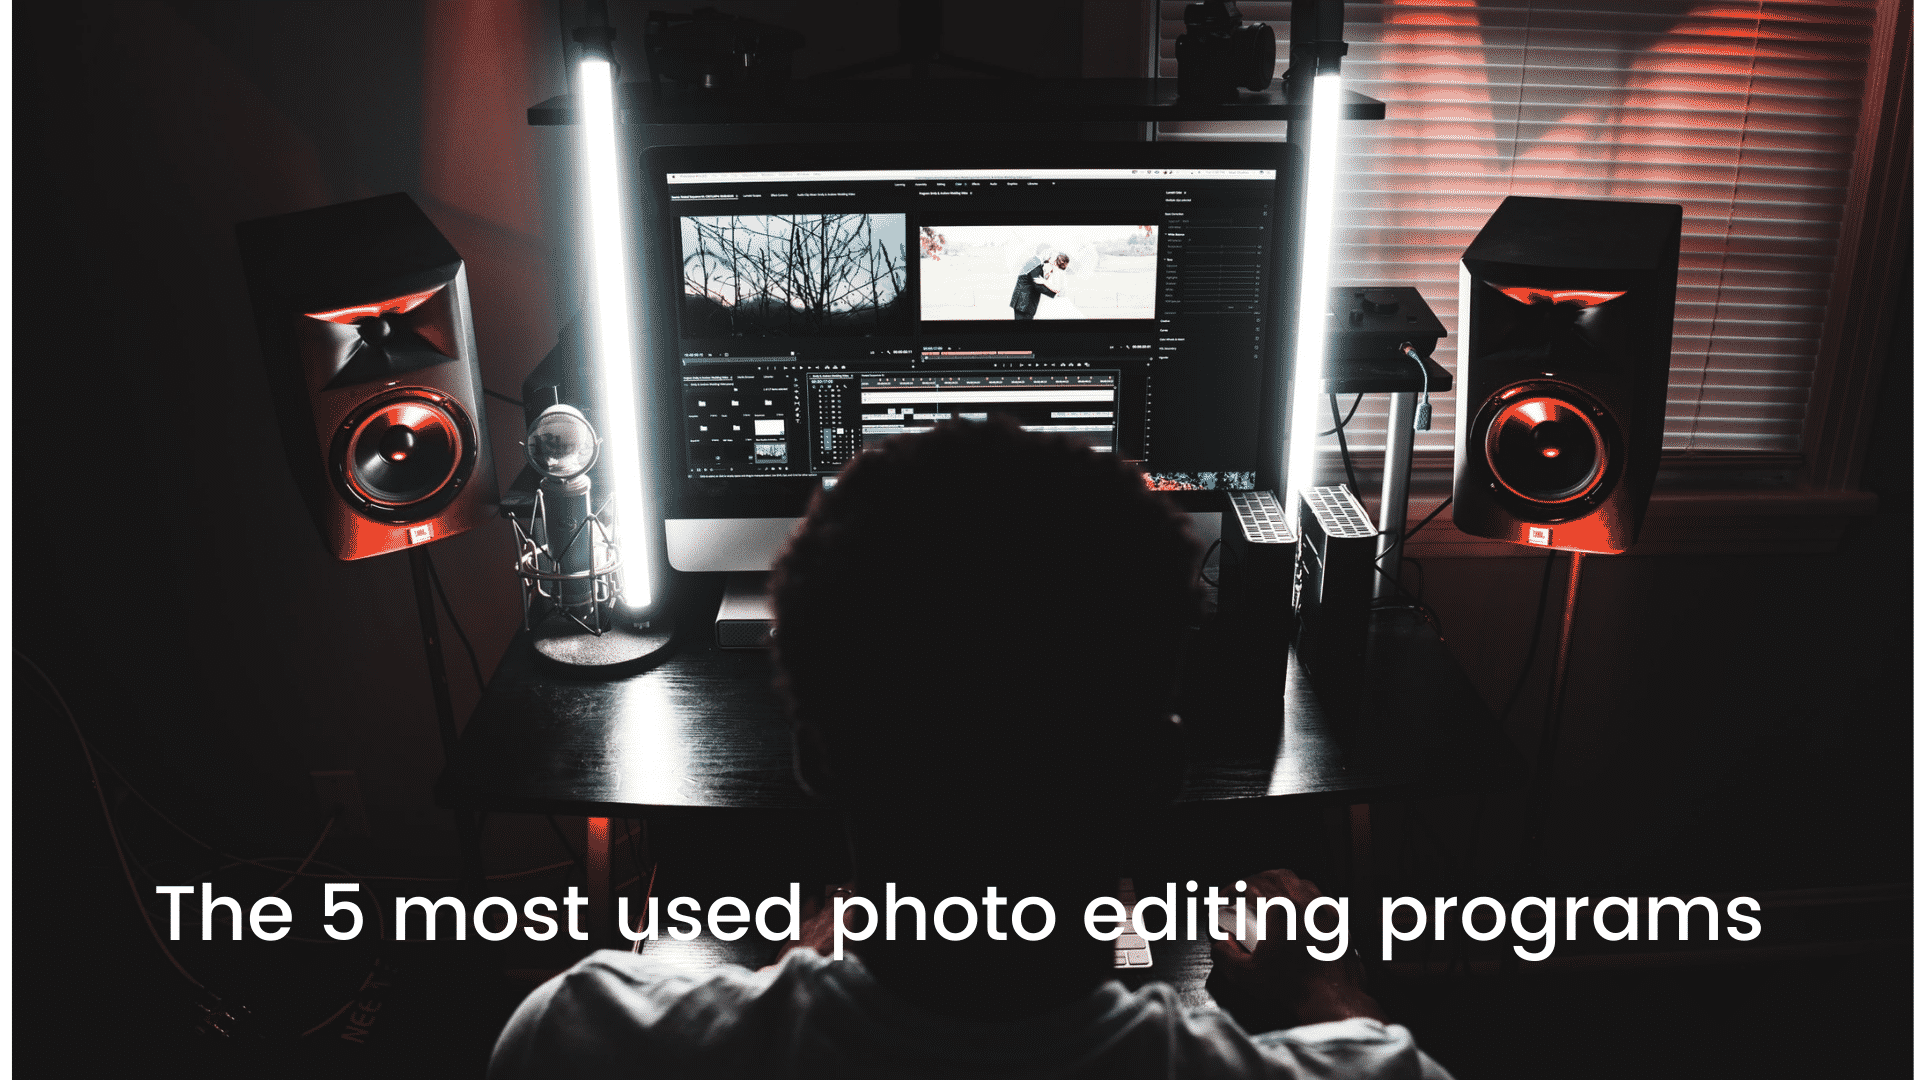 The 5 most used photo editing programs